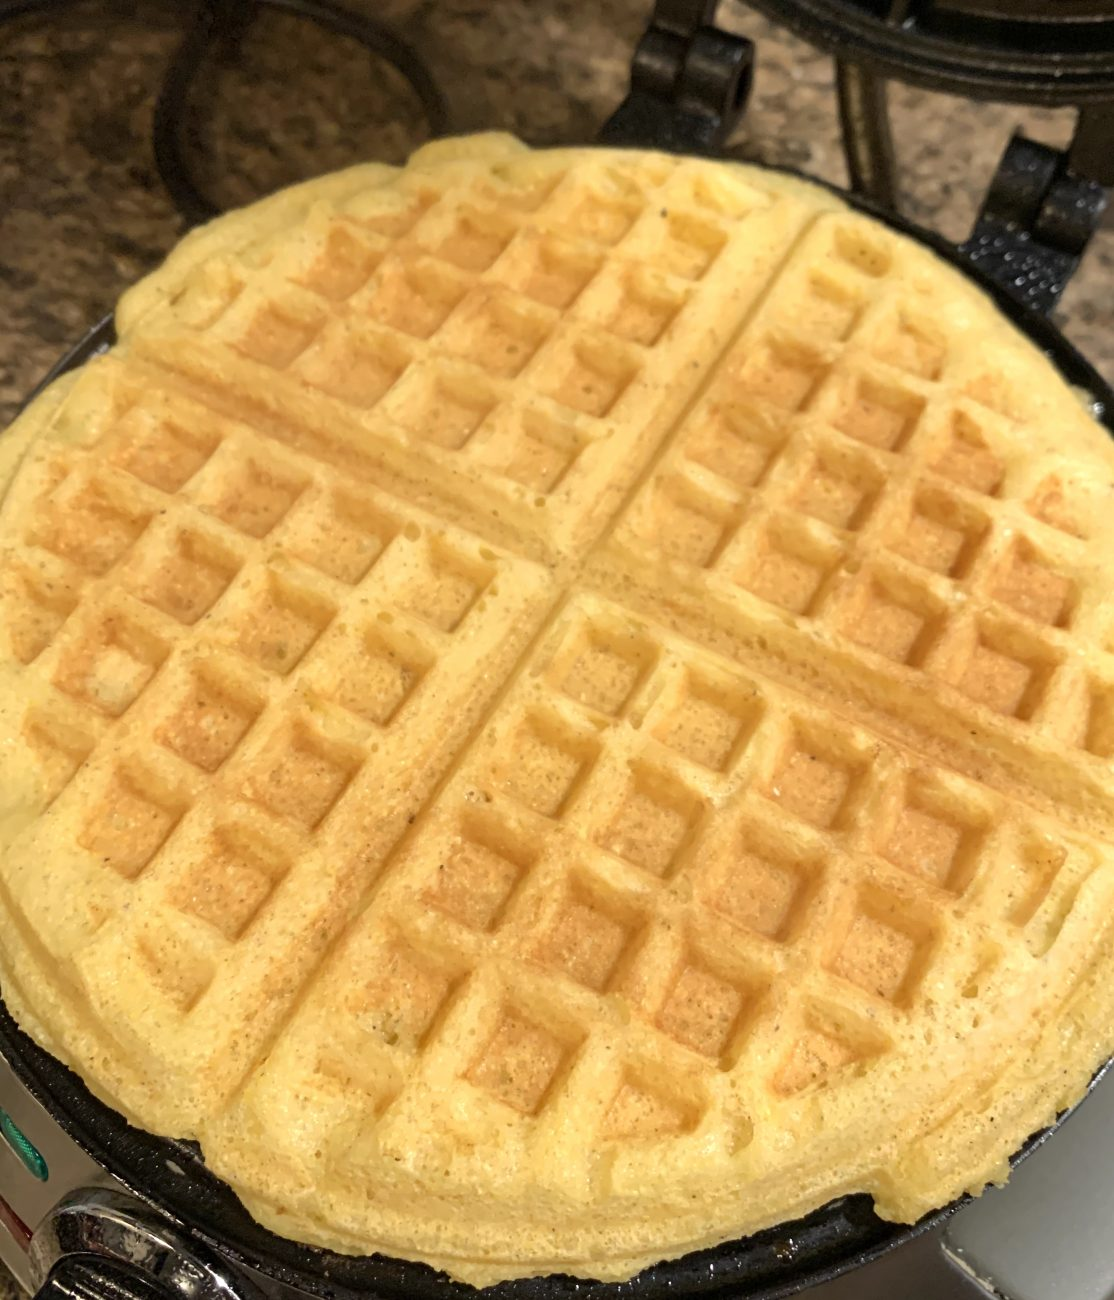 Texan Yellow Corn Waffles from 1980s